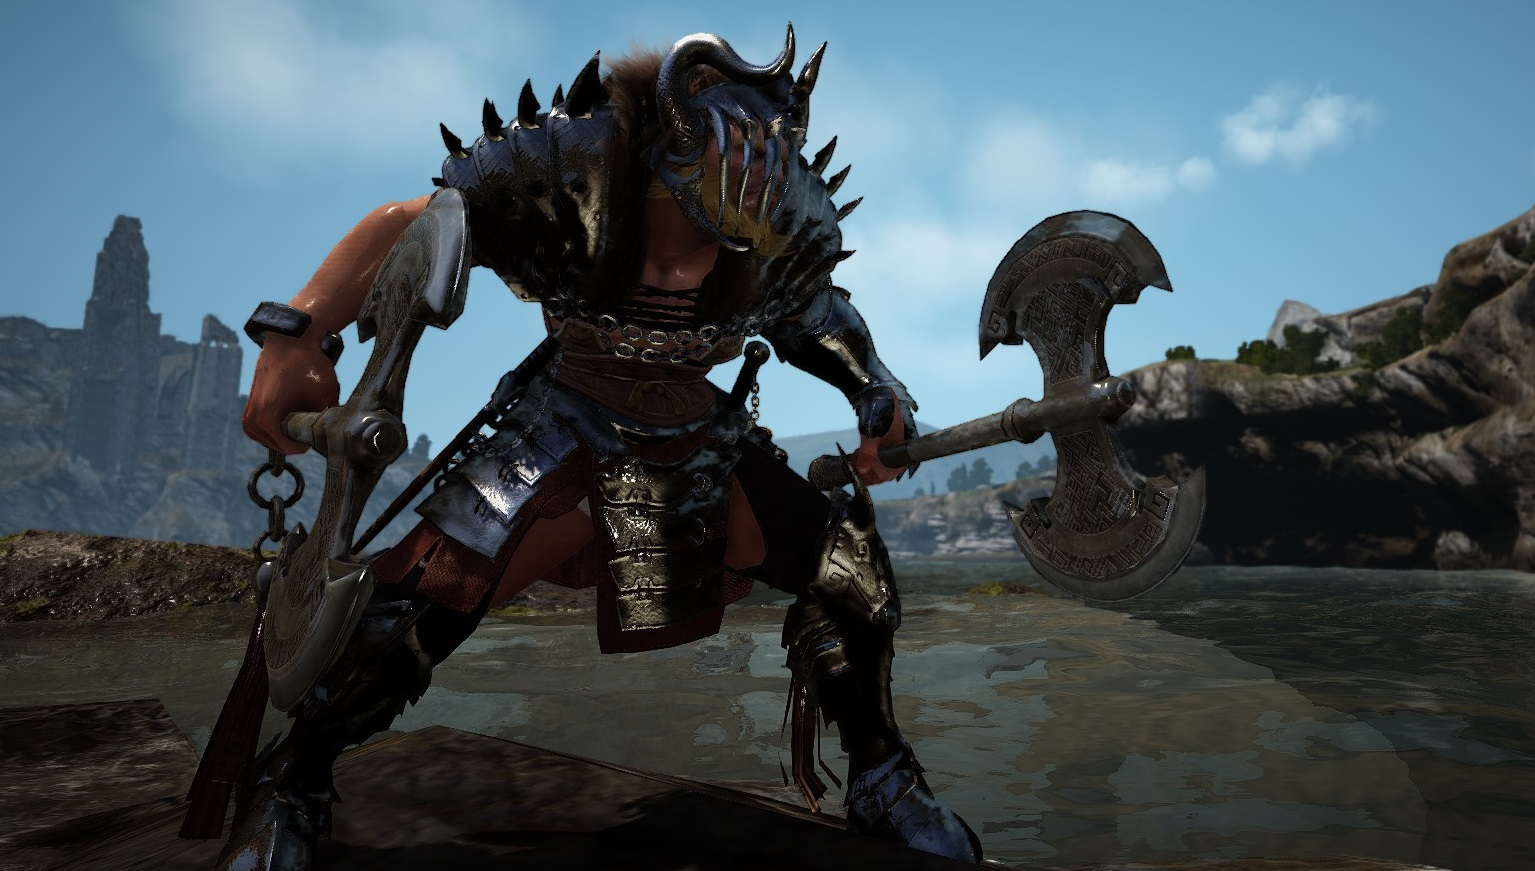 Buy-to-play MMO Black Desert Online launches in March | PC Gamer